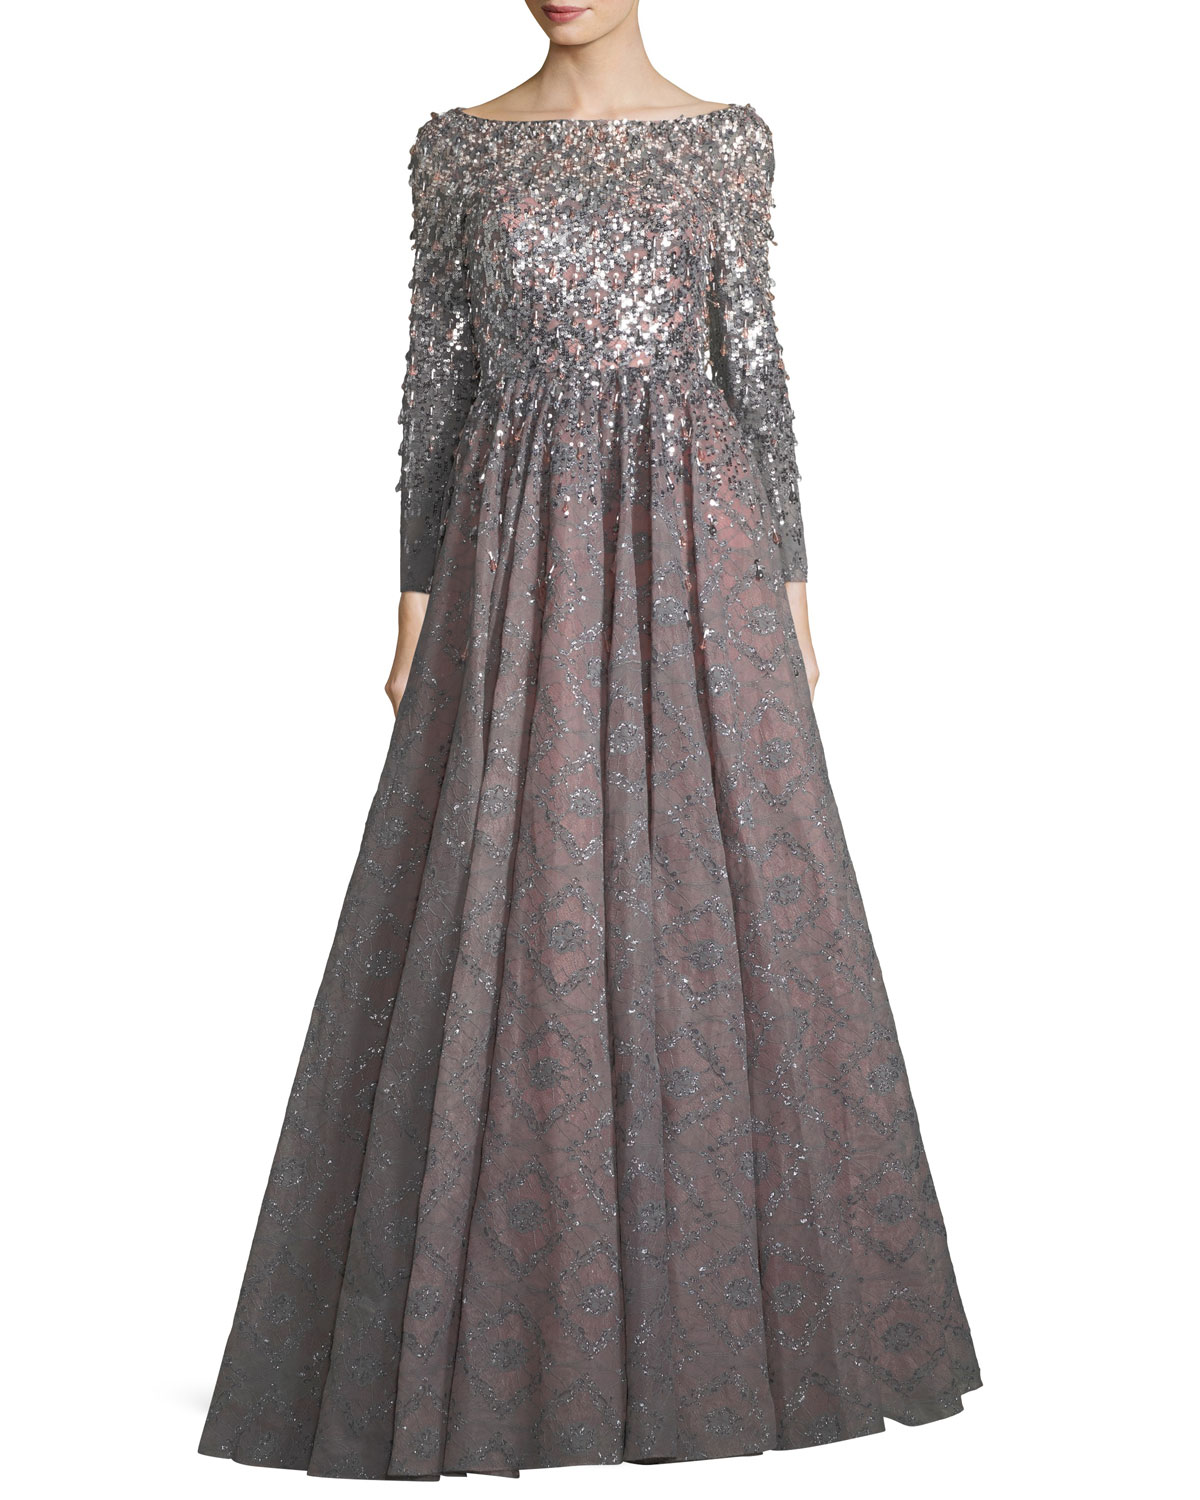 Jenny Packham Sequined Gown | Neiman Marcus